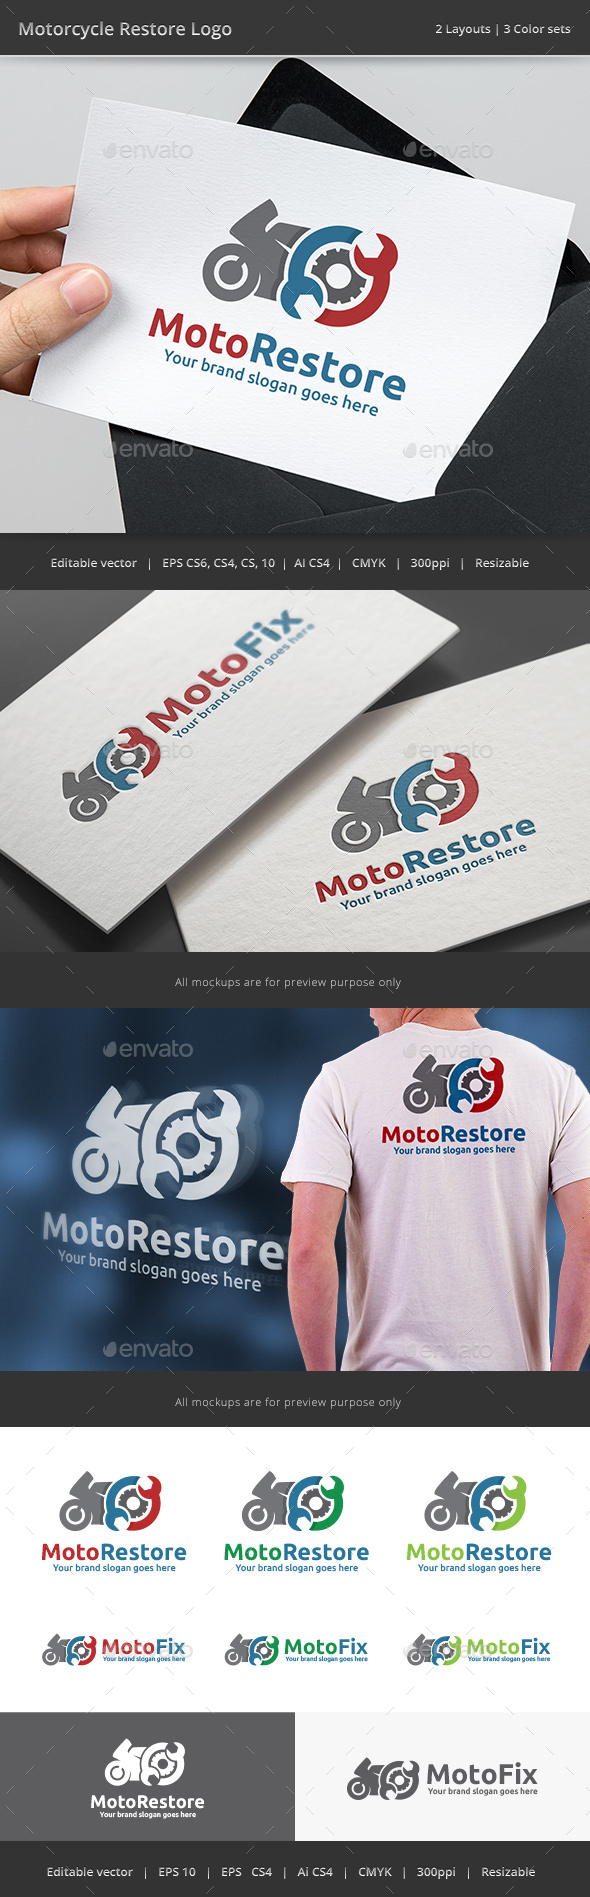 Motorcycle Restore Logo - Vector Abstract